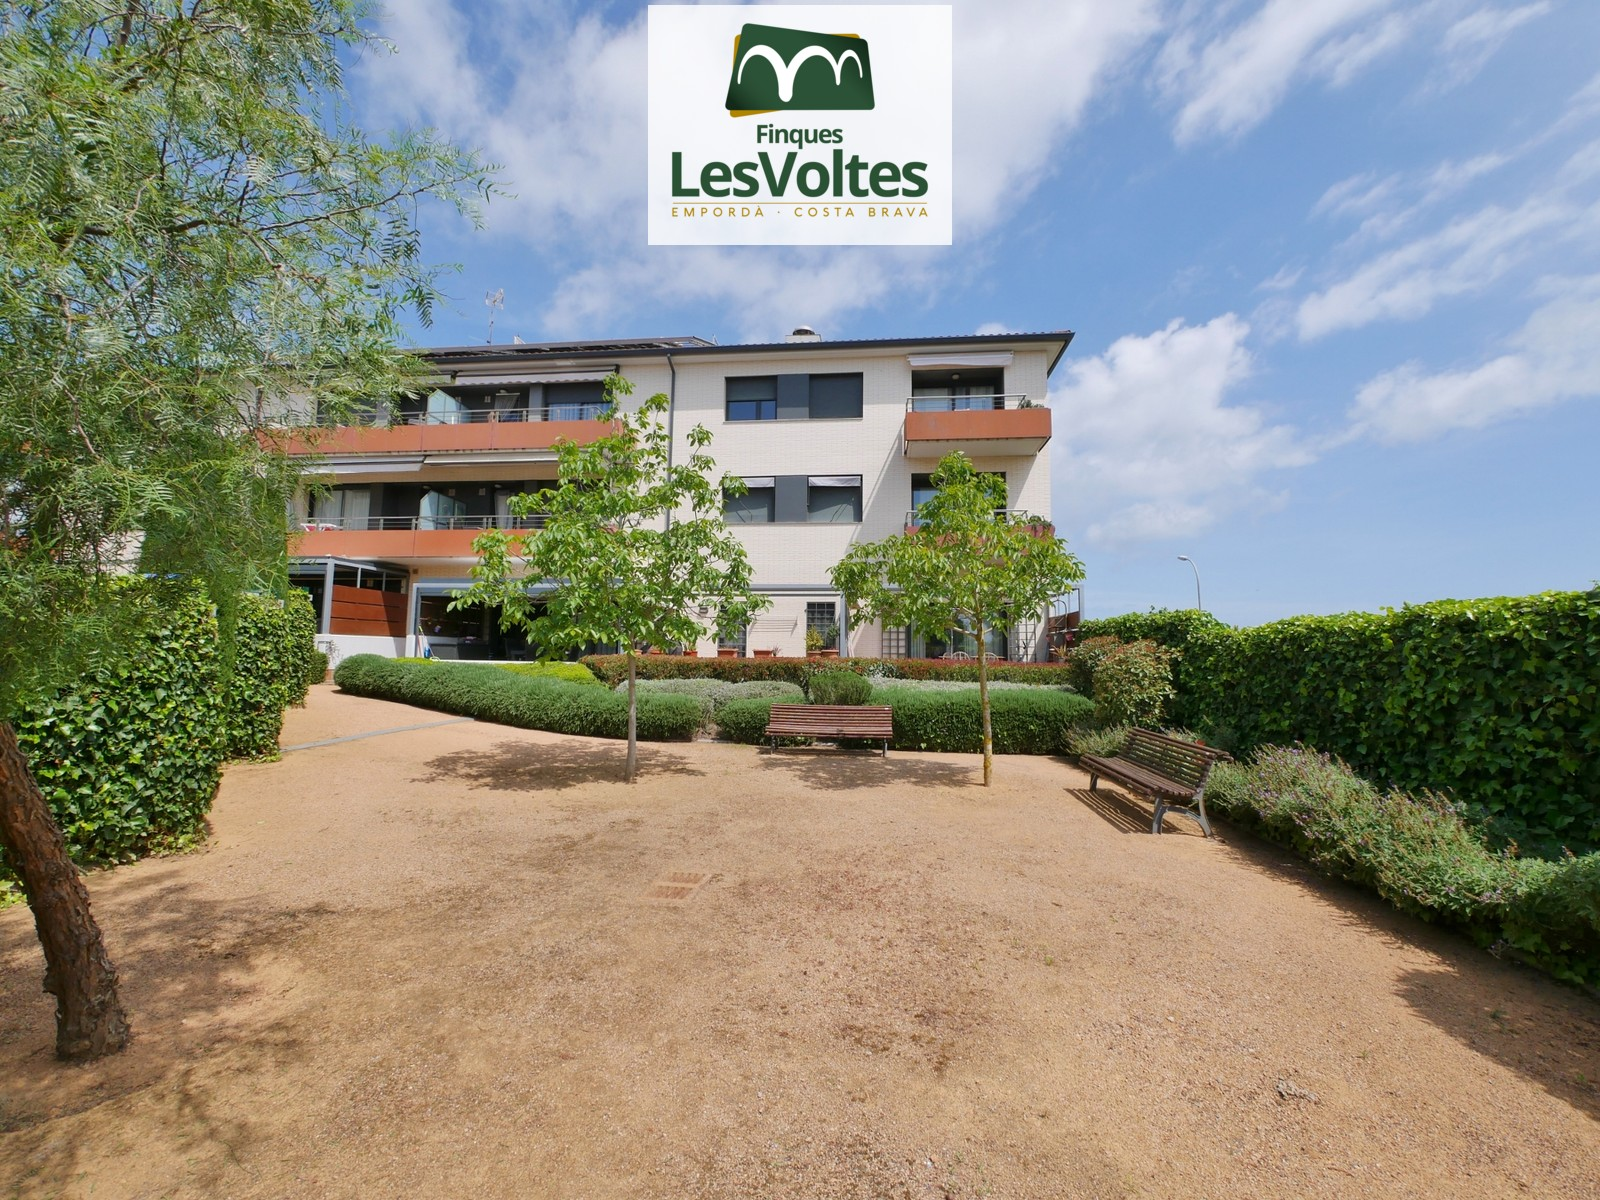 MAGNIFICENT 72 M2 APARTMENT WITH GOOD VIEWS AND 2 PARKING SPACES. IMPECCABLE COMMUNITY WITH GARDEN IN A QUIET AREA CLOSE TO T